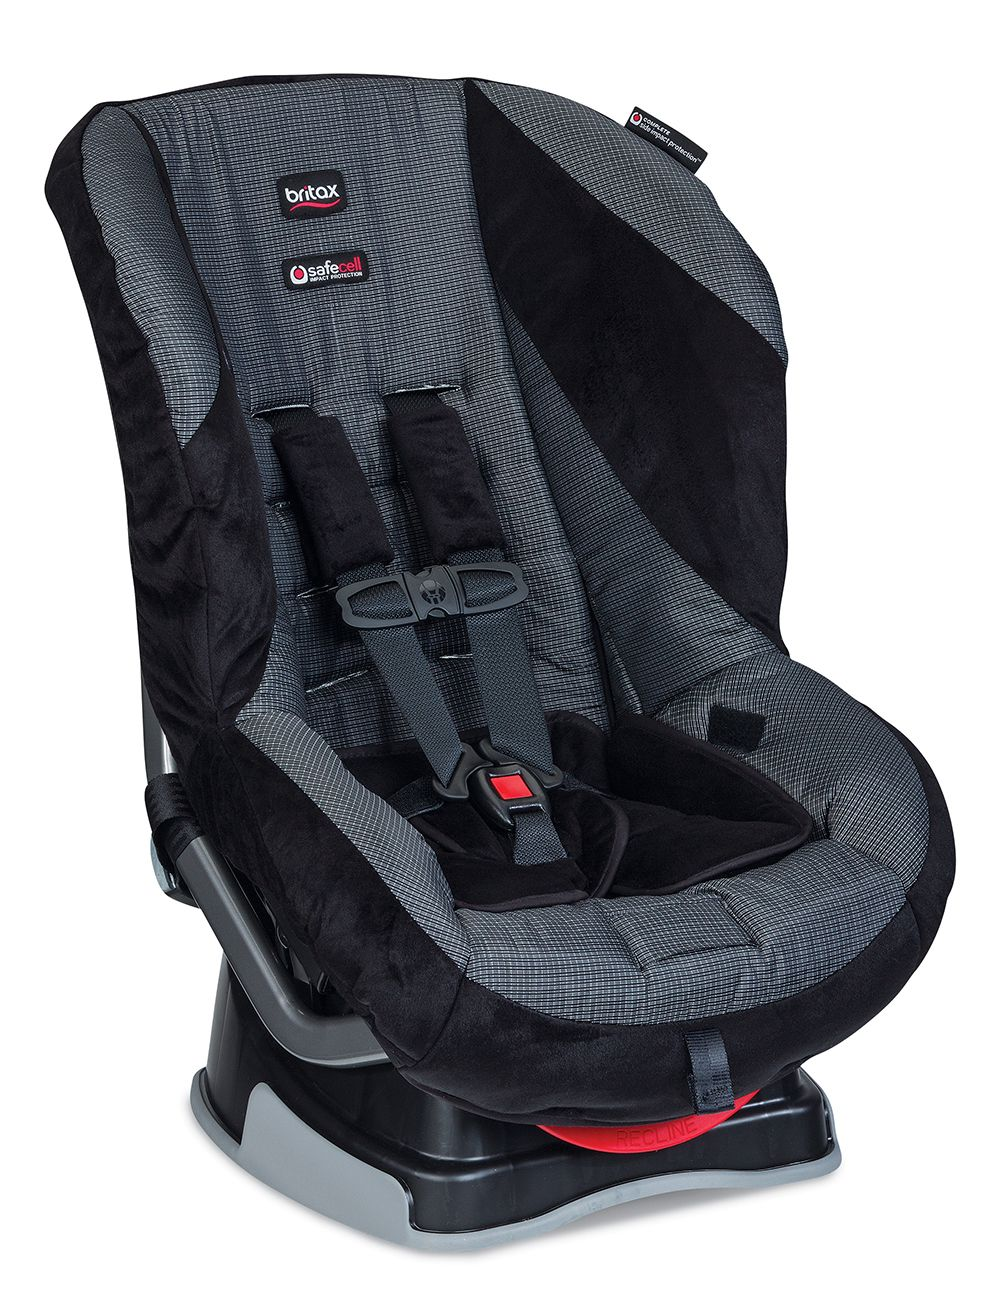 Britax Roundabout convertible car seat in Onyx fashion